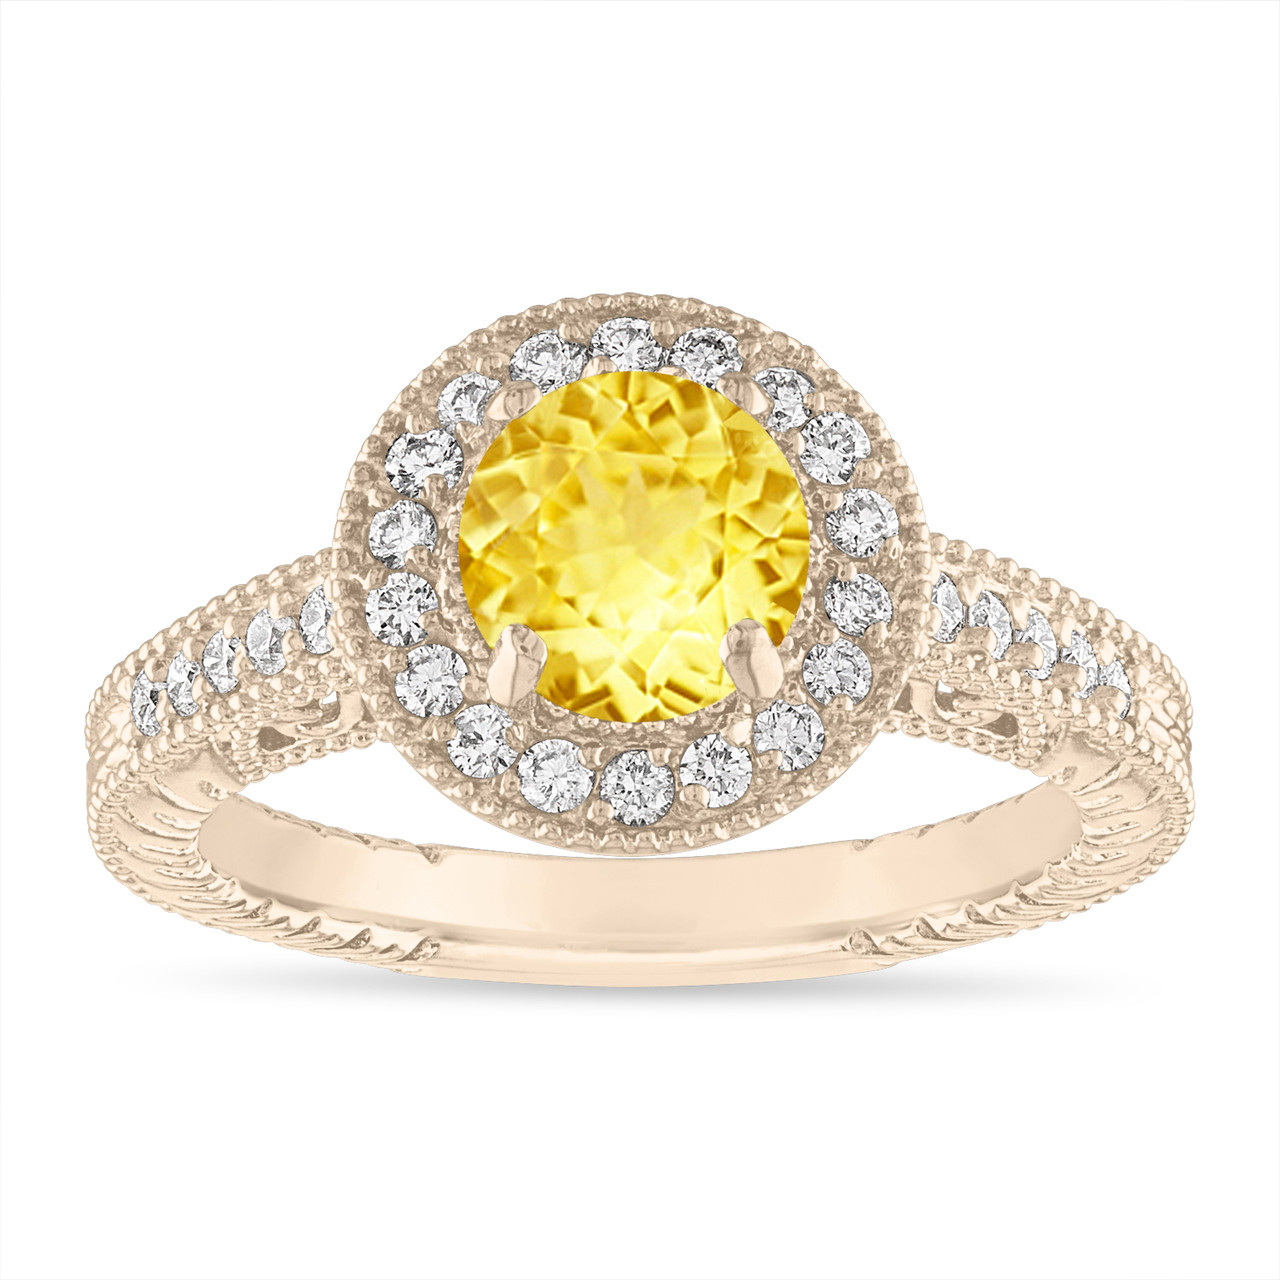 0b9ac9e015f00 Yellow Sapphire Engagement Ring Vintage Style 14K Yellow Gold or White Gold  1.28 Carat Halo Pave Handmade Unique Certified